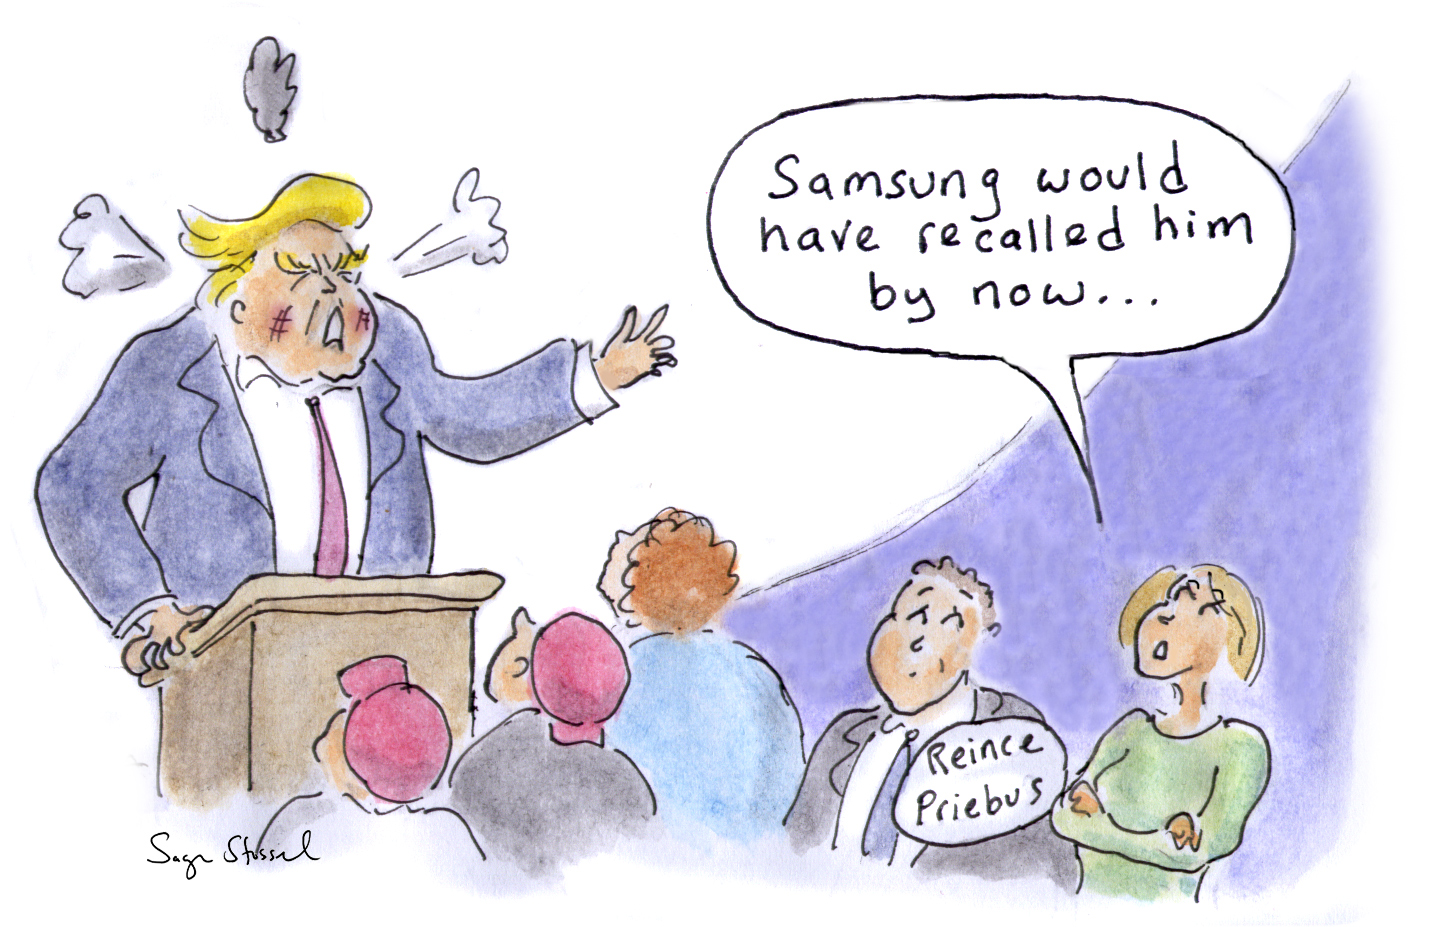 samsung, galaxy note, exploding phones, recall, ntsb airplane ban, trump, groping women, lash out, meltdown, election, cartoon